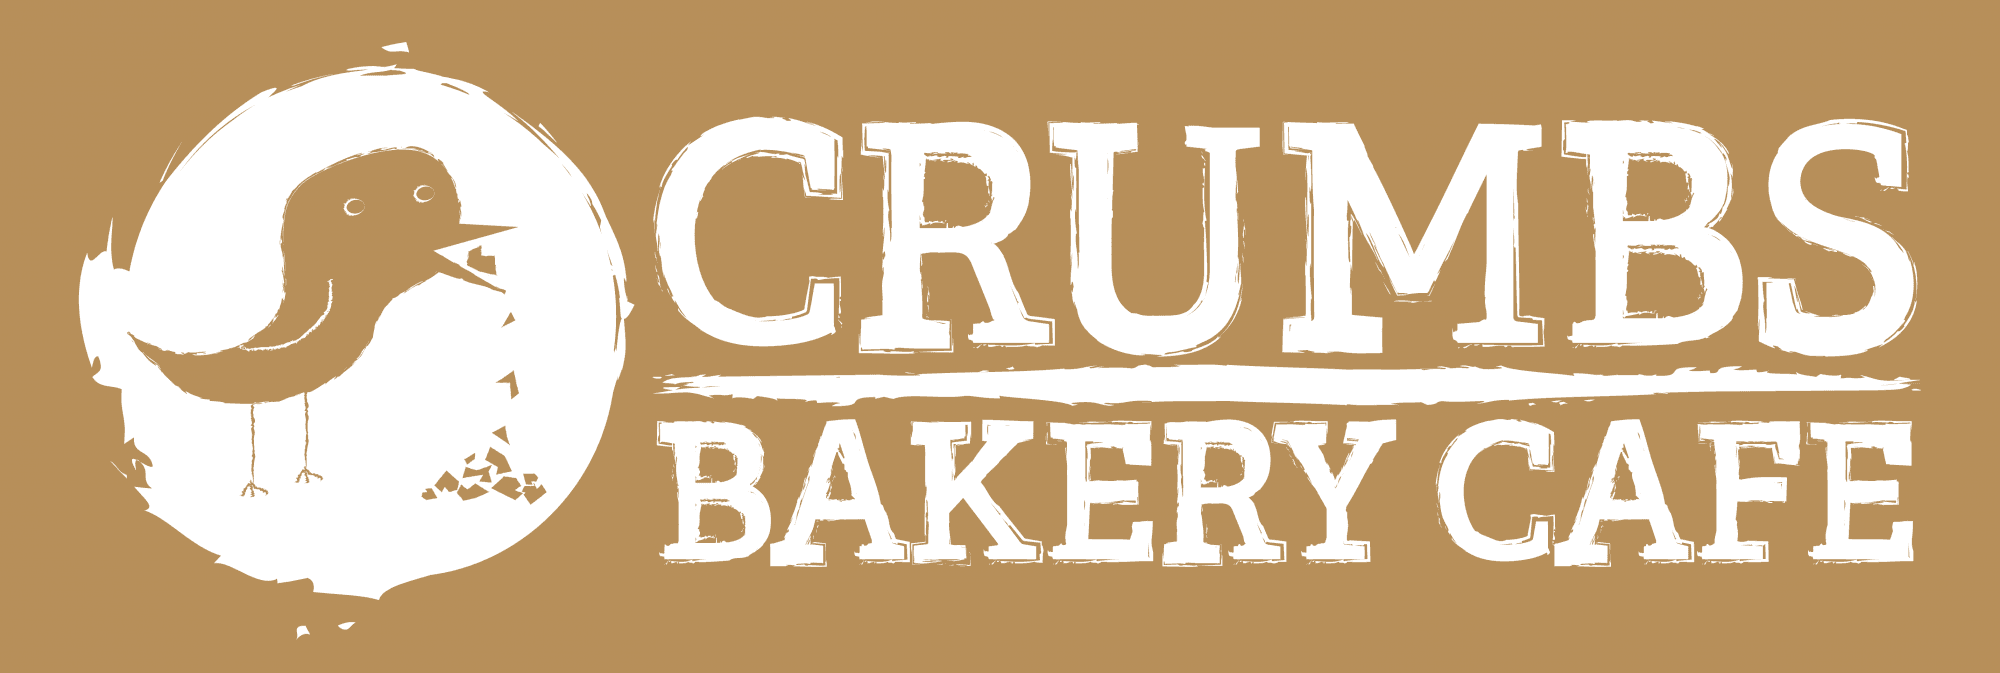 Crumbs Bakery Cafe Image